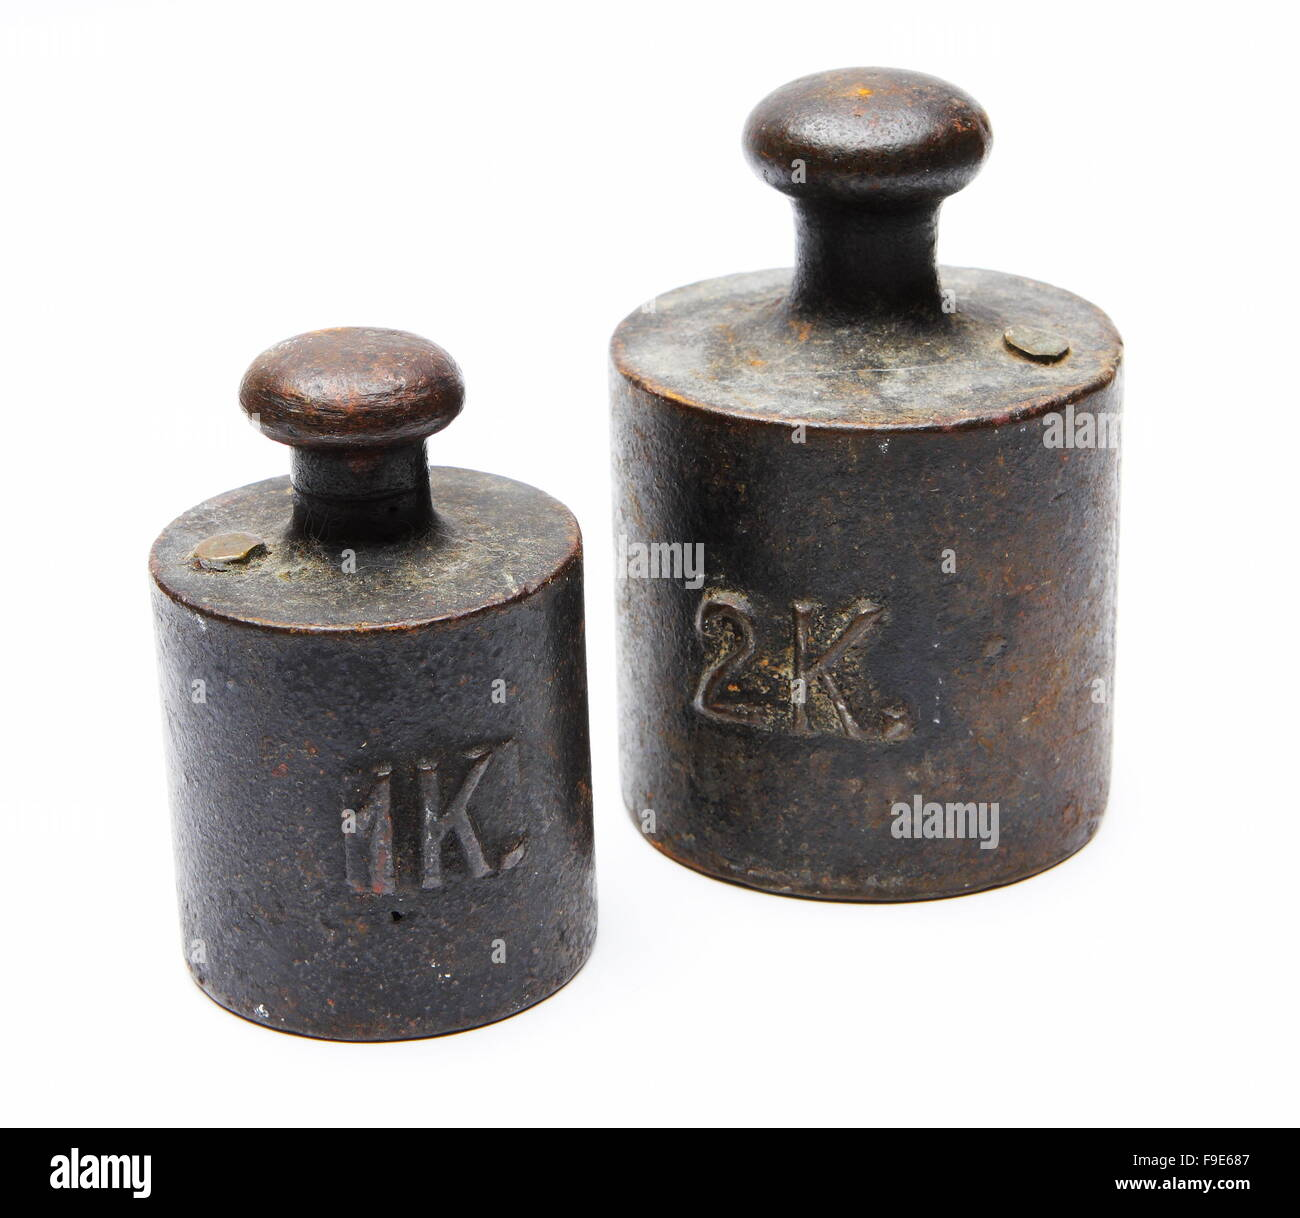 One And Two Kg Weights - Stock Image